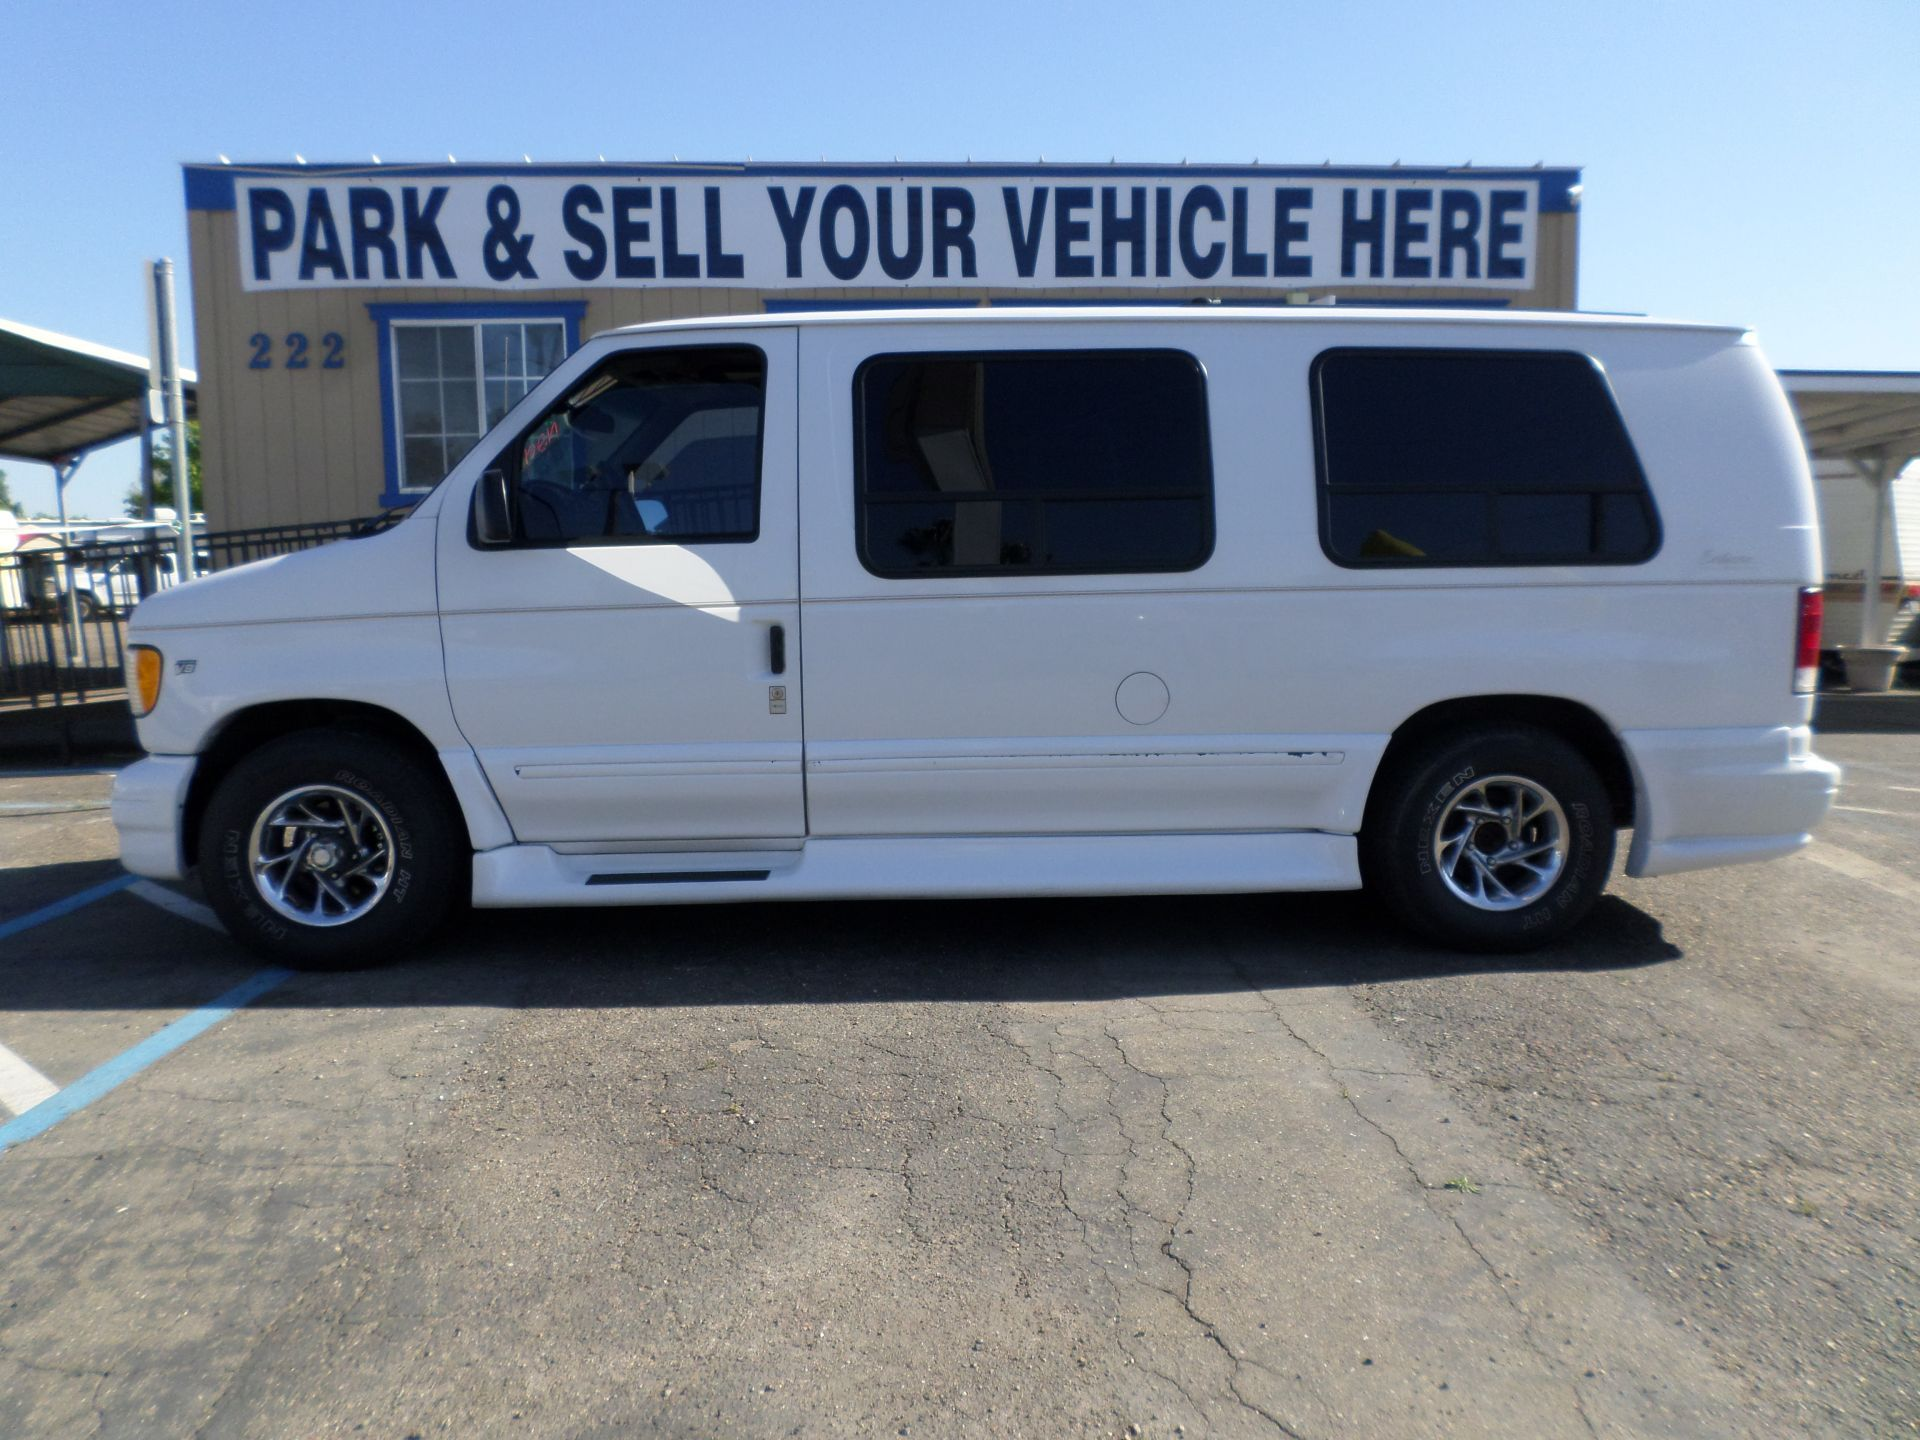 1999 Ford E 150 Conversion Van Van For Sale Van Conversion Vans